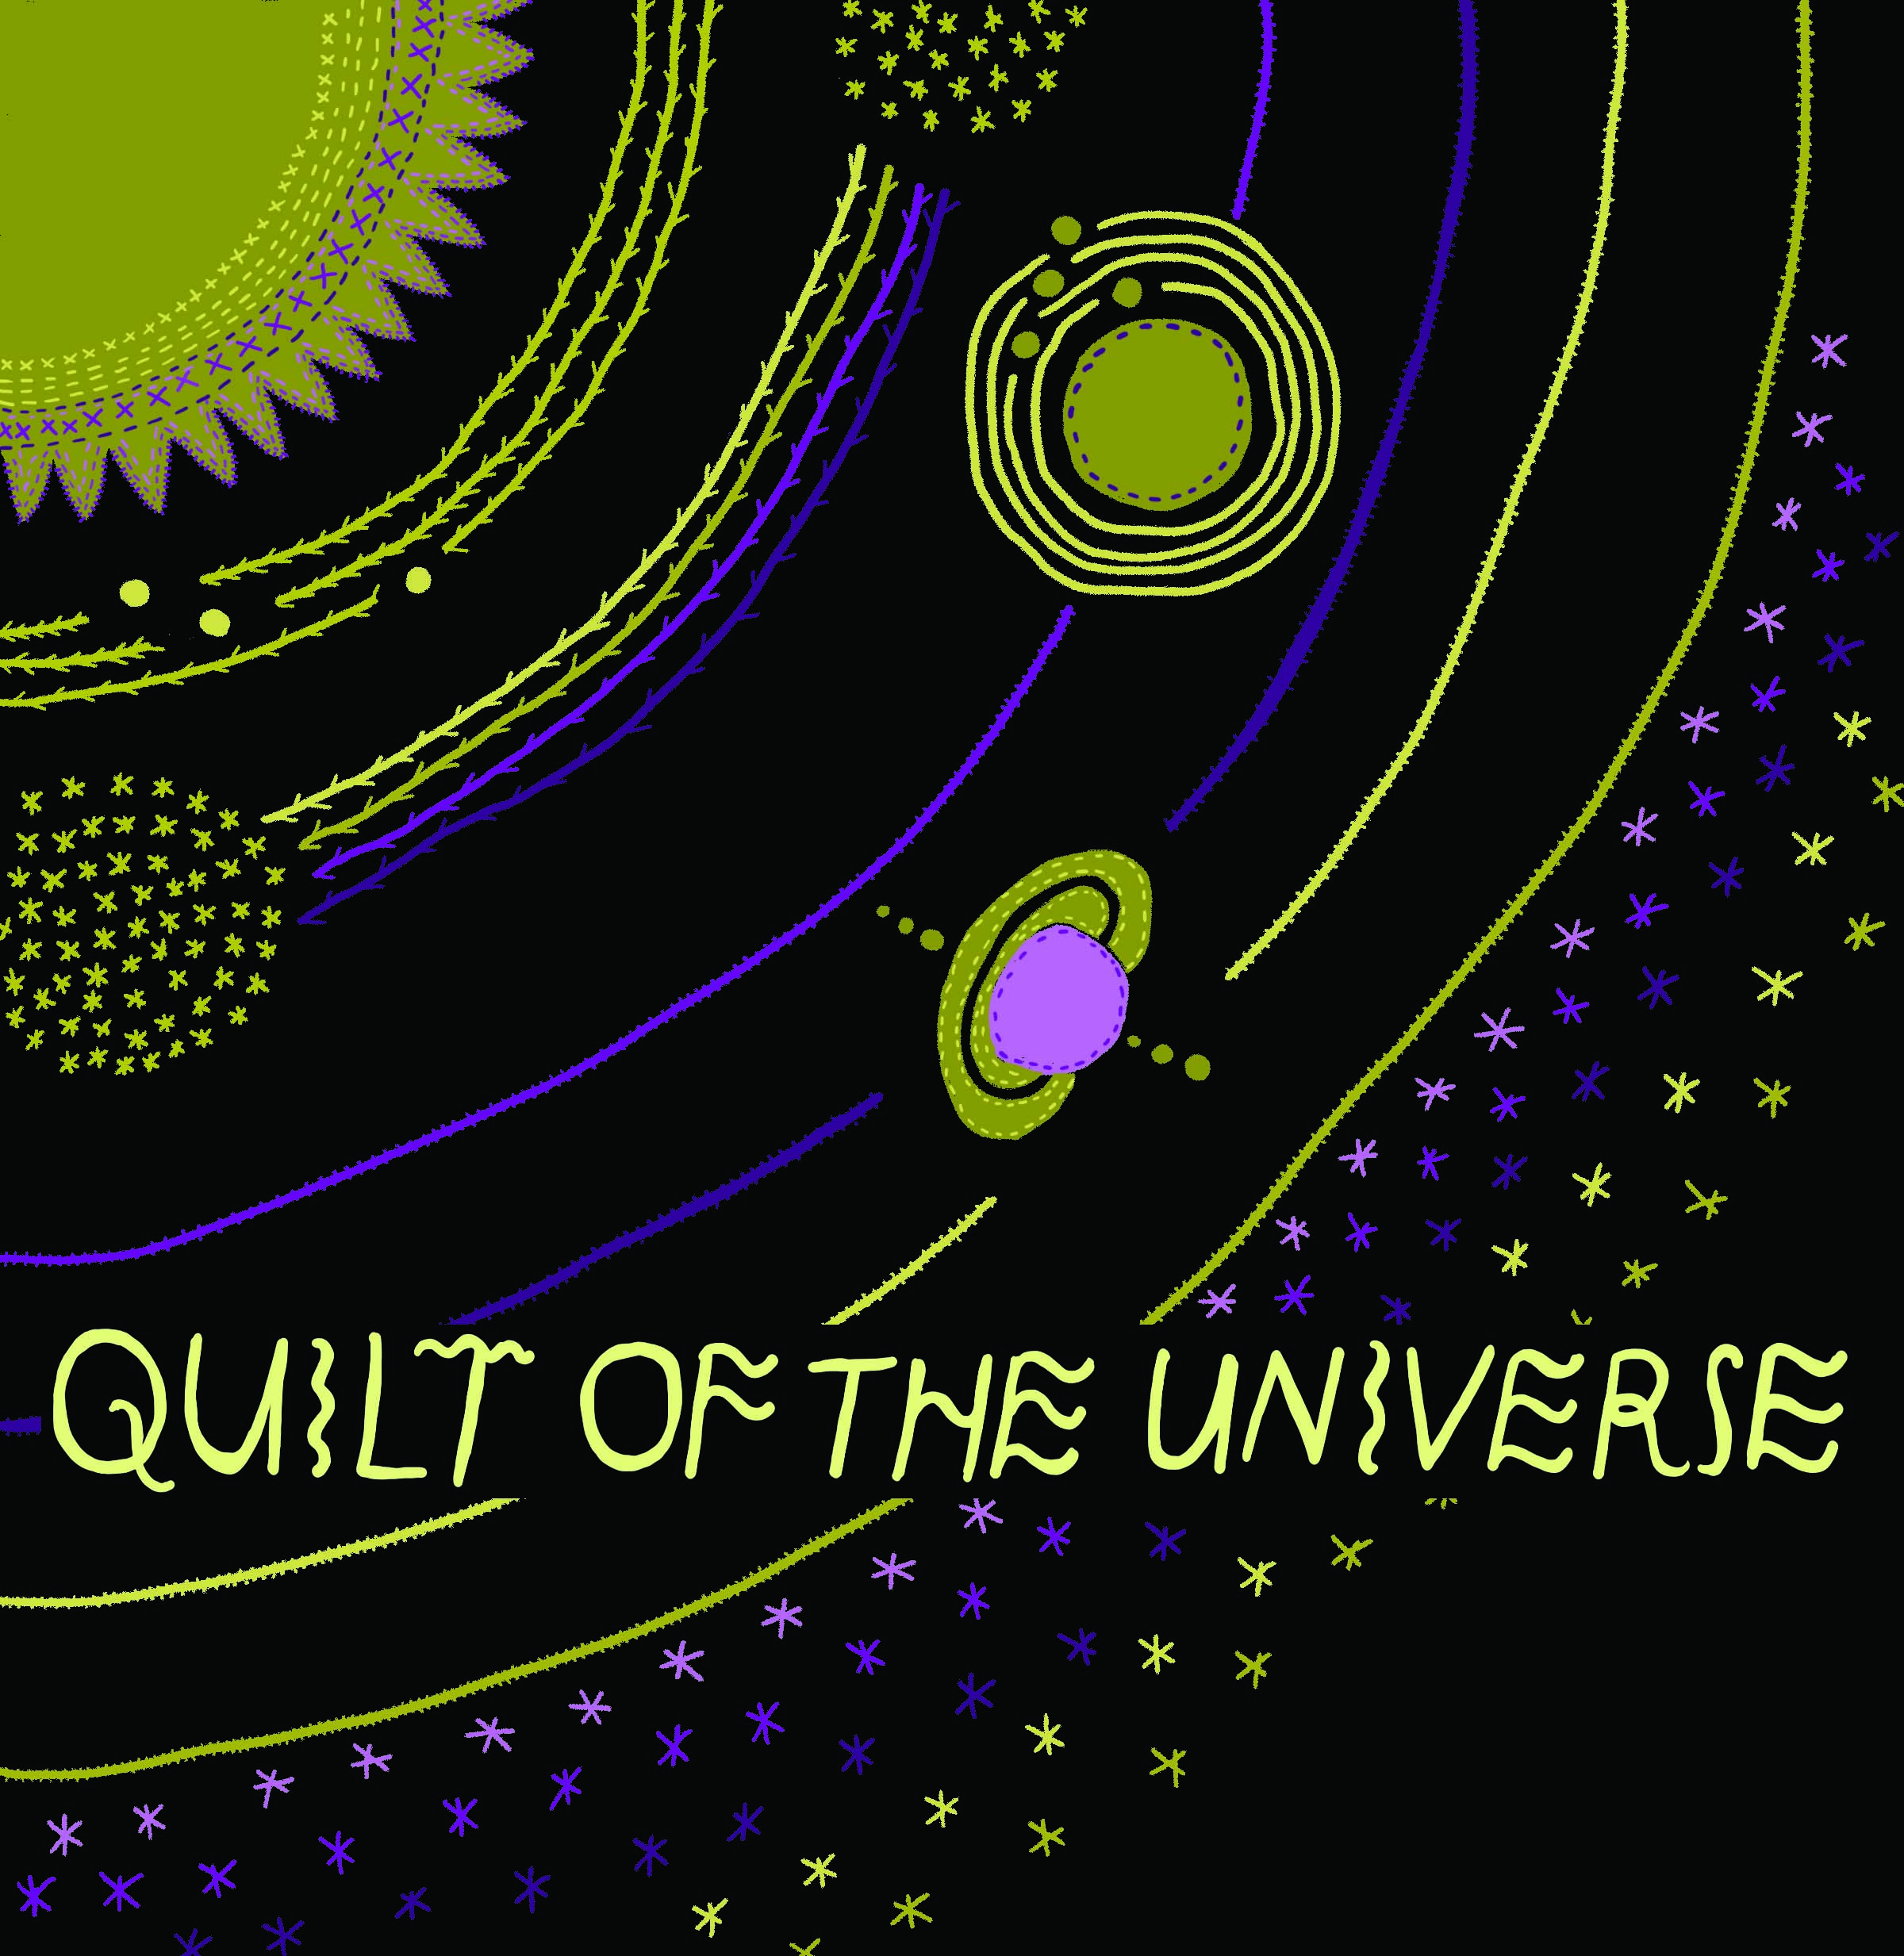 quilt of the universe artwork for press.jpg